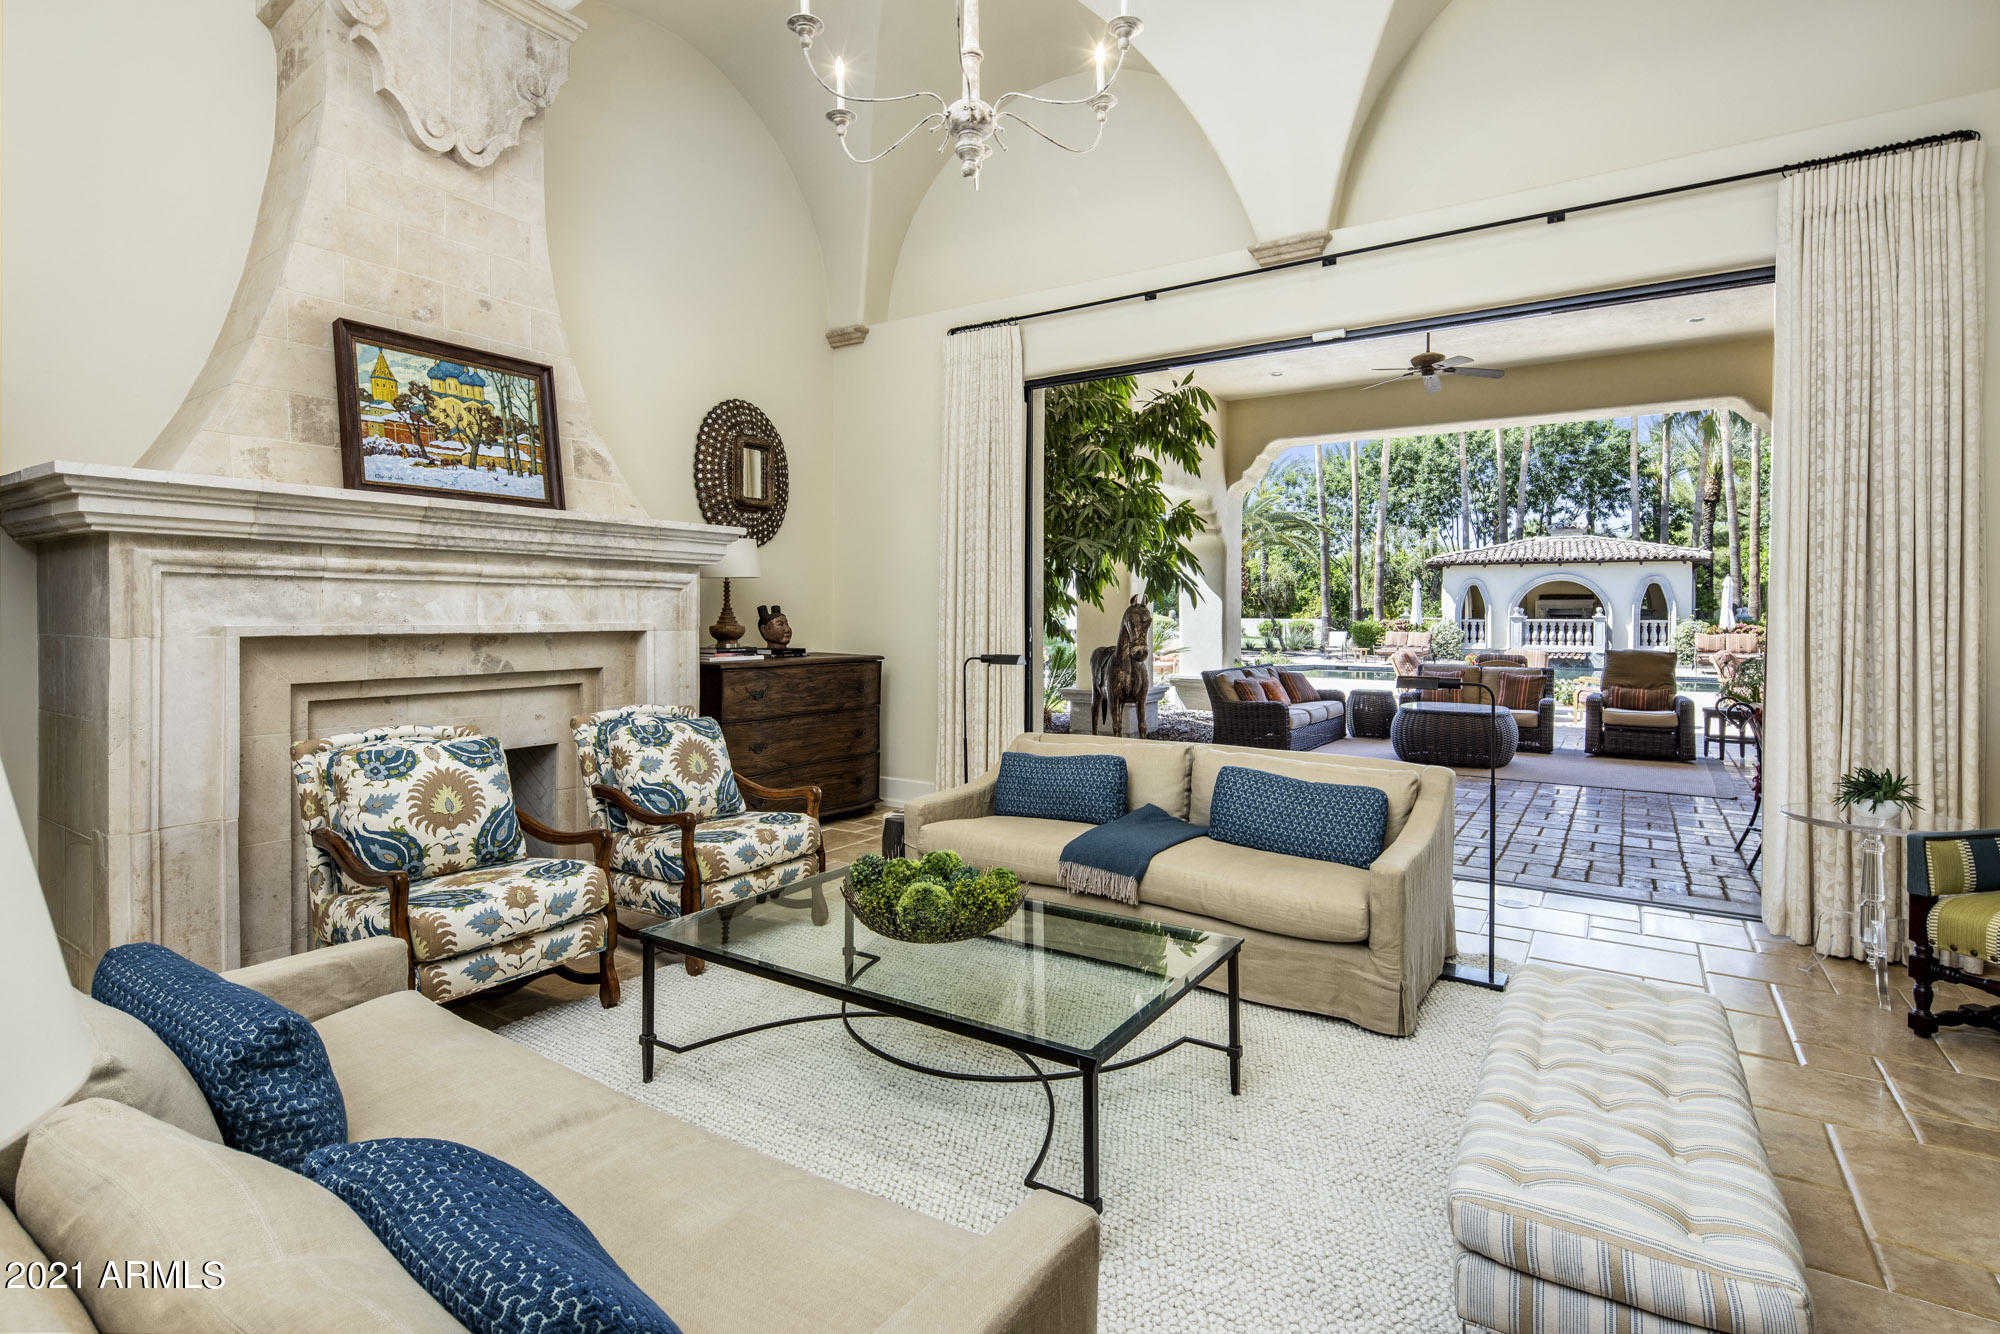 $6,500,000 - 5Br/8Ba - Home for Sale in Judson Place, Paradise Valley